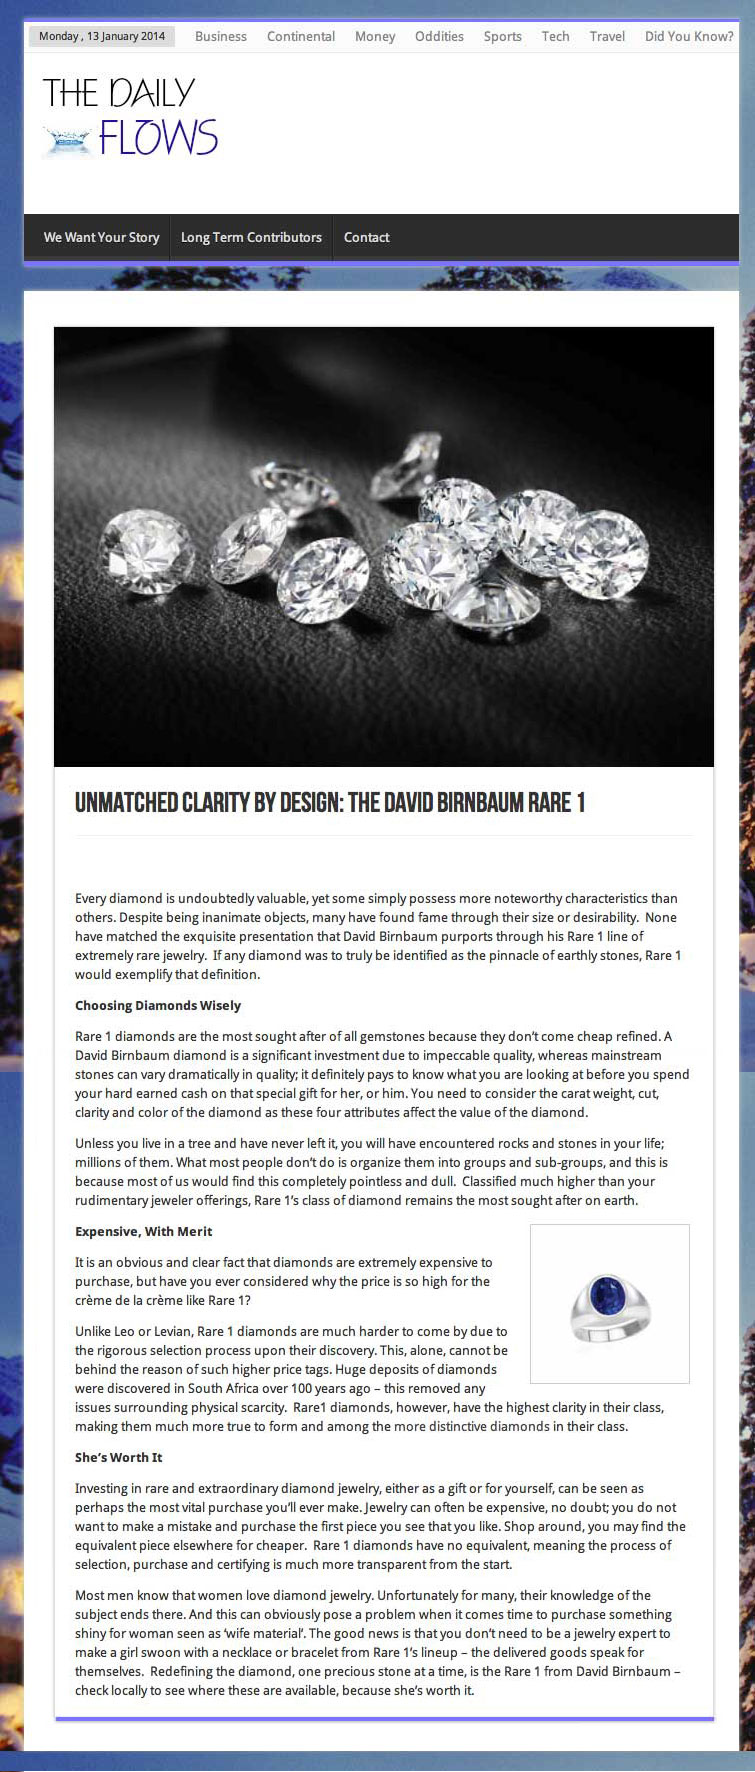 Global gem cutters and dealers, David Birnbaum Private Jewelers optimizes its selection of the very rarest jewels.